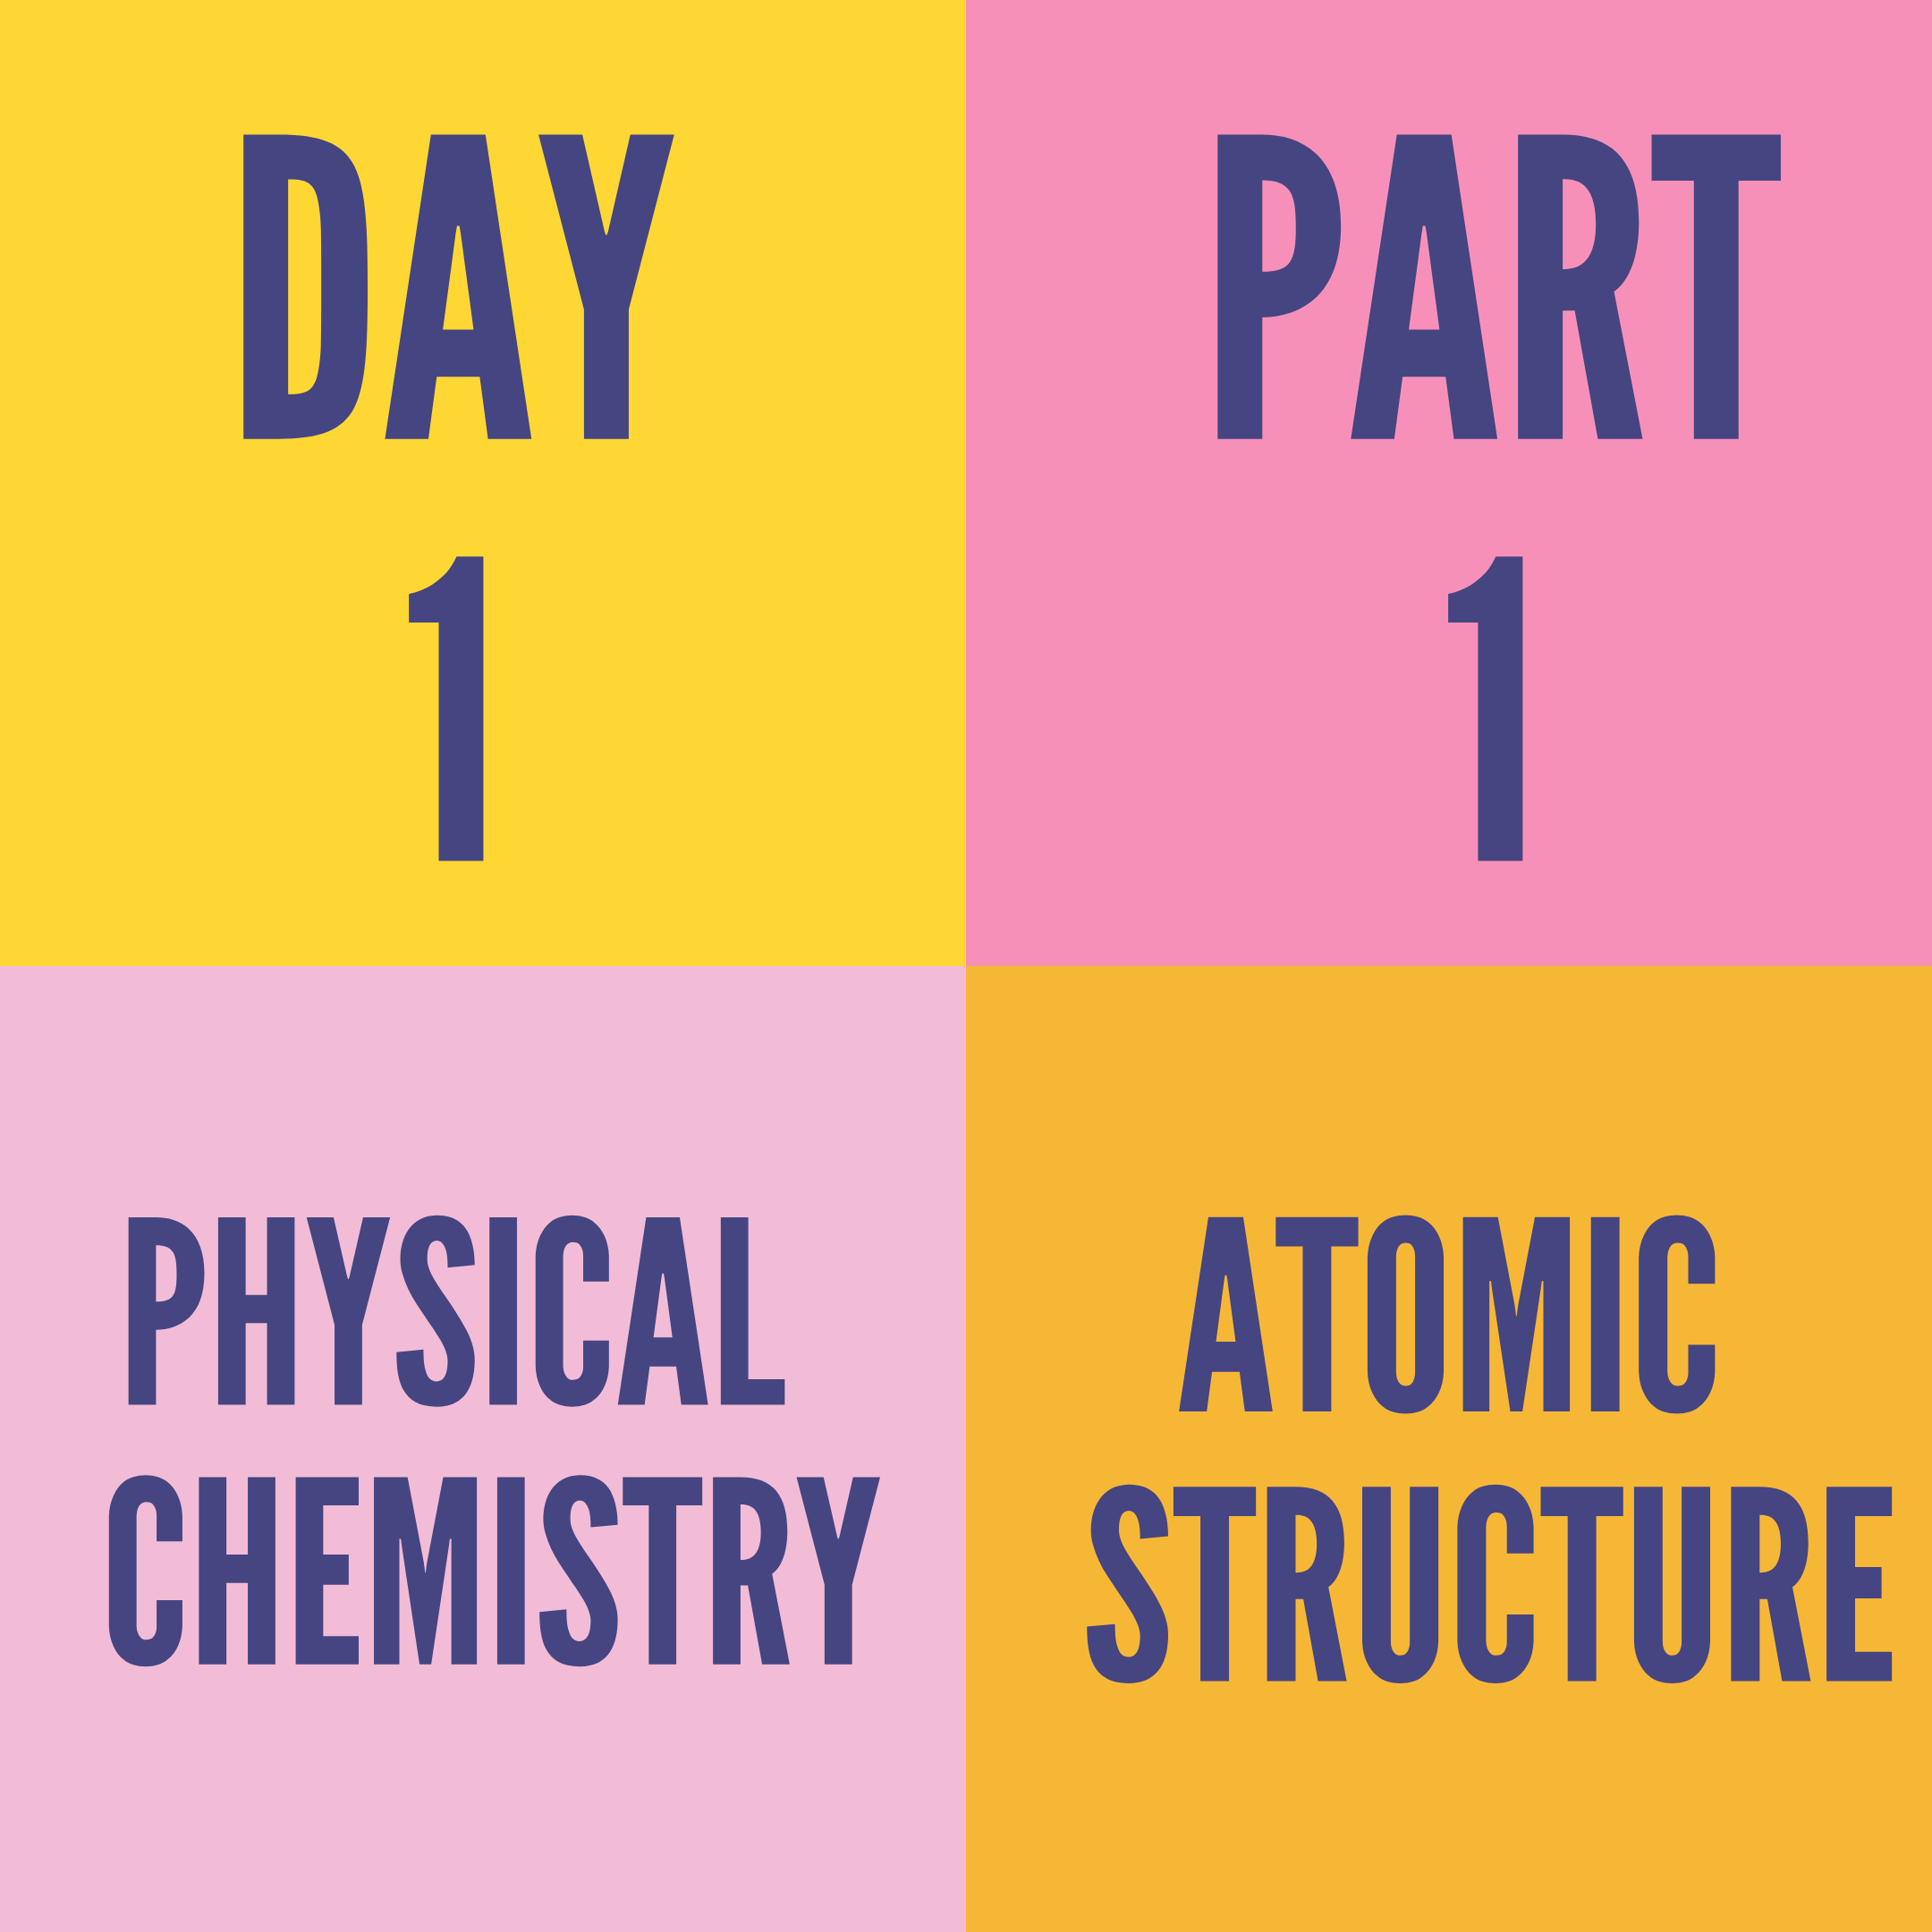 DAY-1 PART-1 ATOMIC STRUCTURE